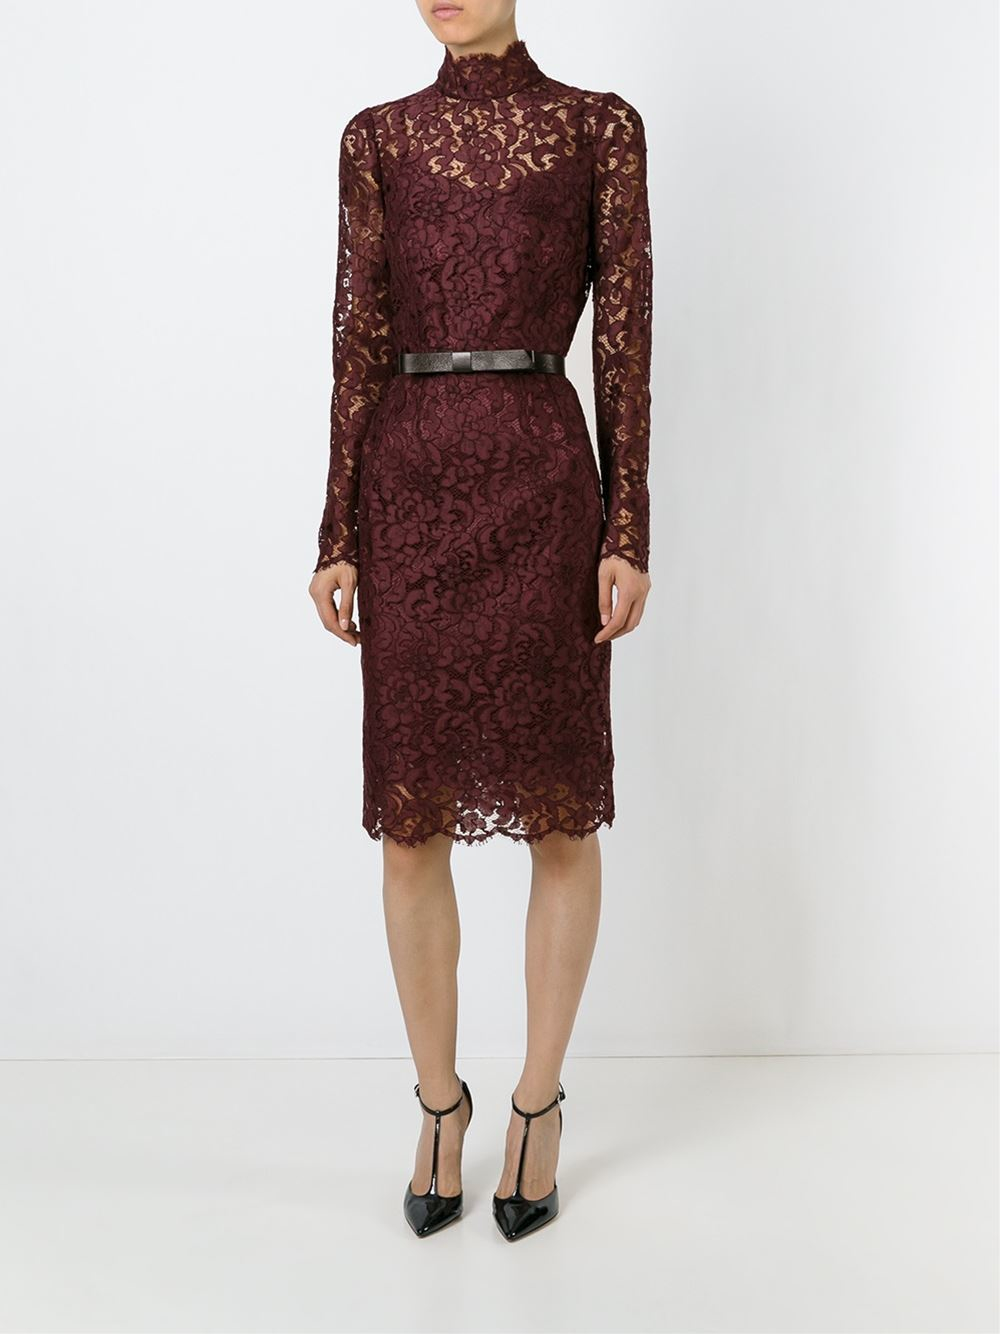 Dolce Amp Gabbana High Neck Lace Dress In Brown Pink